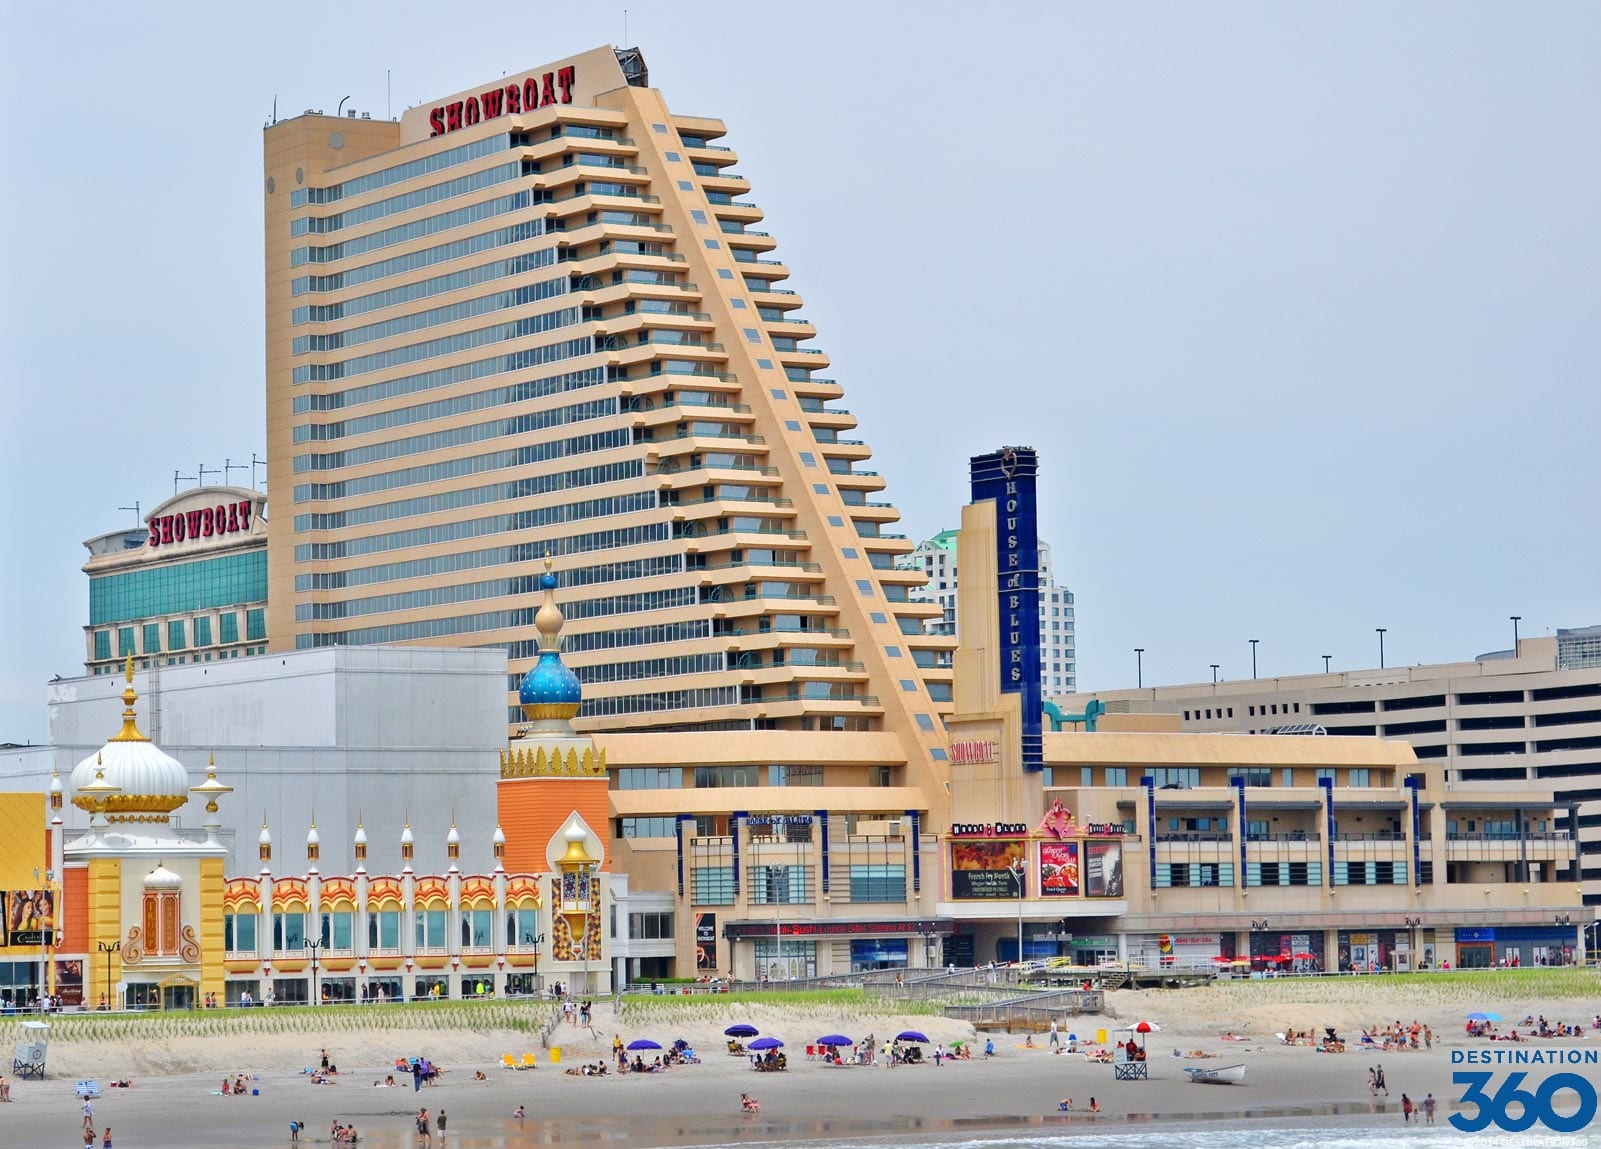 NJ Casino Trips - Showboat Hotel Atlantic City - LI Casino Transportation